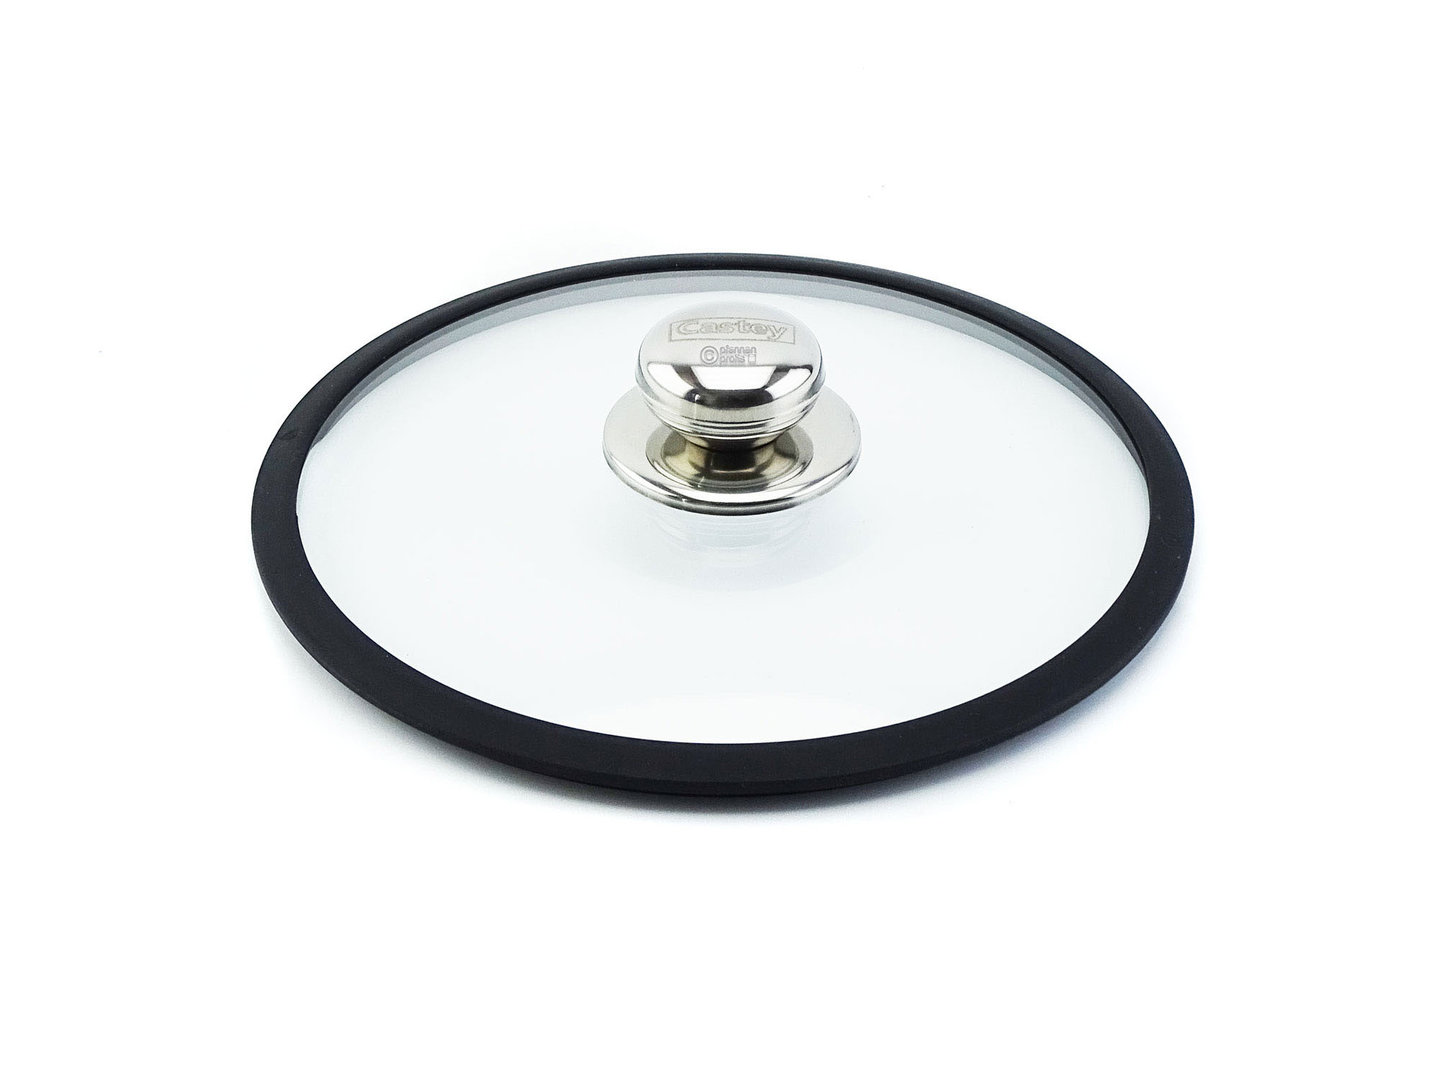 CASTEY ovenproof glass lid 22 cm with silicone rim